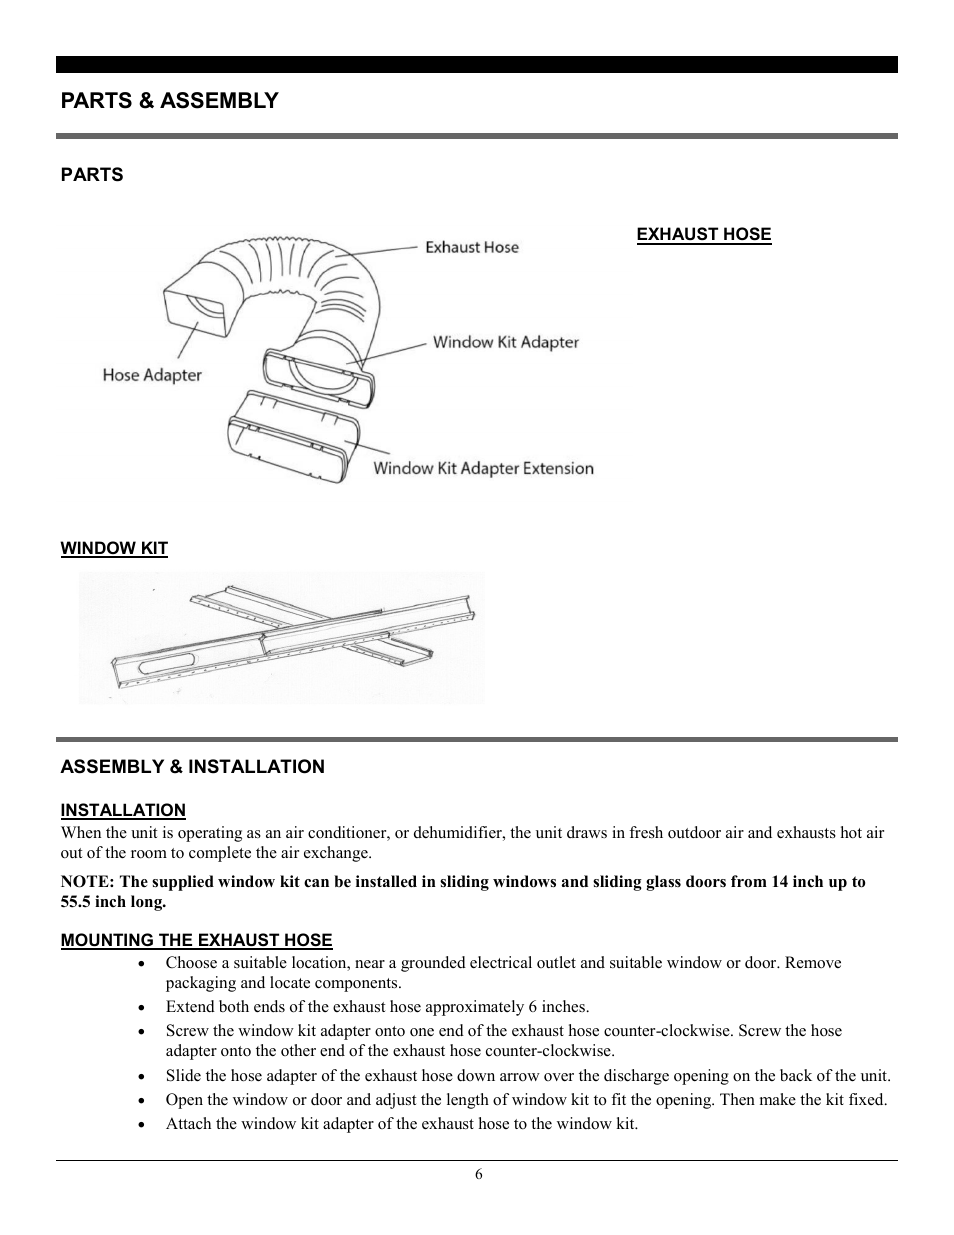 Parts & assembly | SoleusAir PE8-11R-32 User Manual | Page 6